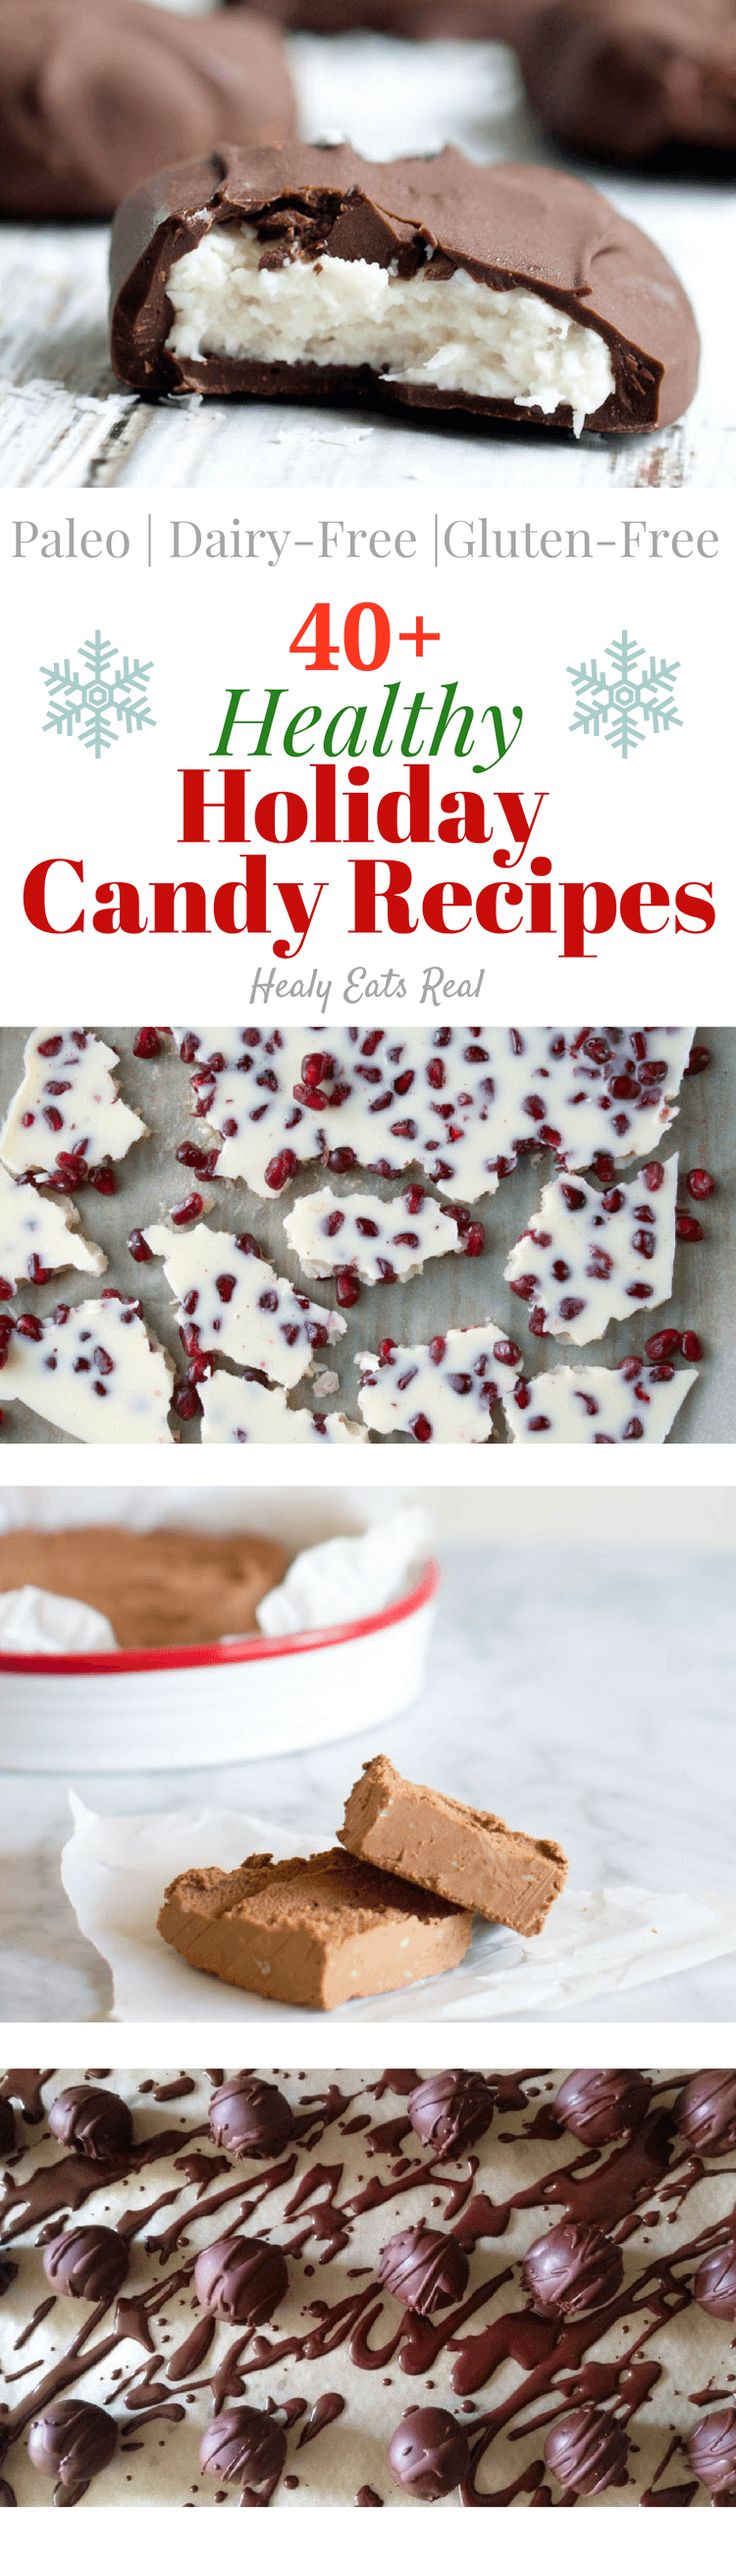 Healthy Holiday Candy Recipes (Paleo, Dairy Free, Gluten Free) -- Lots of delicious christmas treat recipes here...all of them are naturally sweetened!